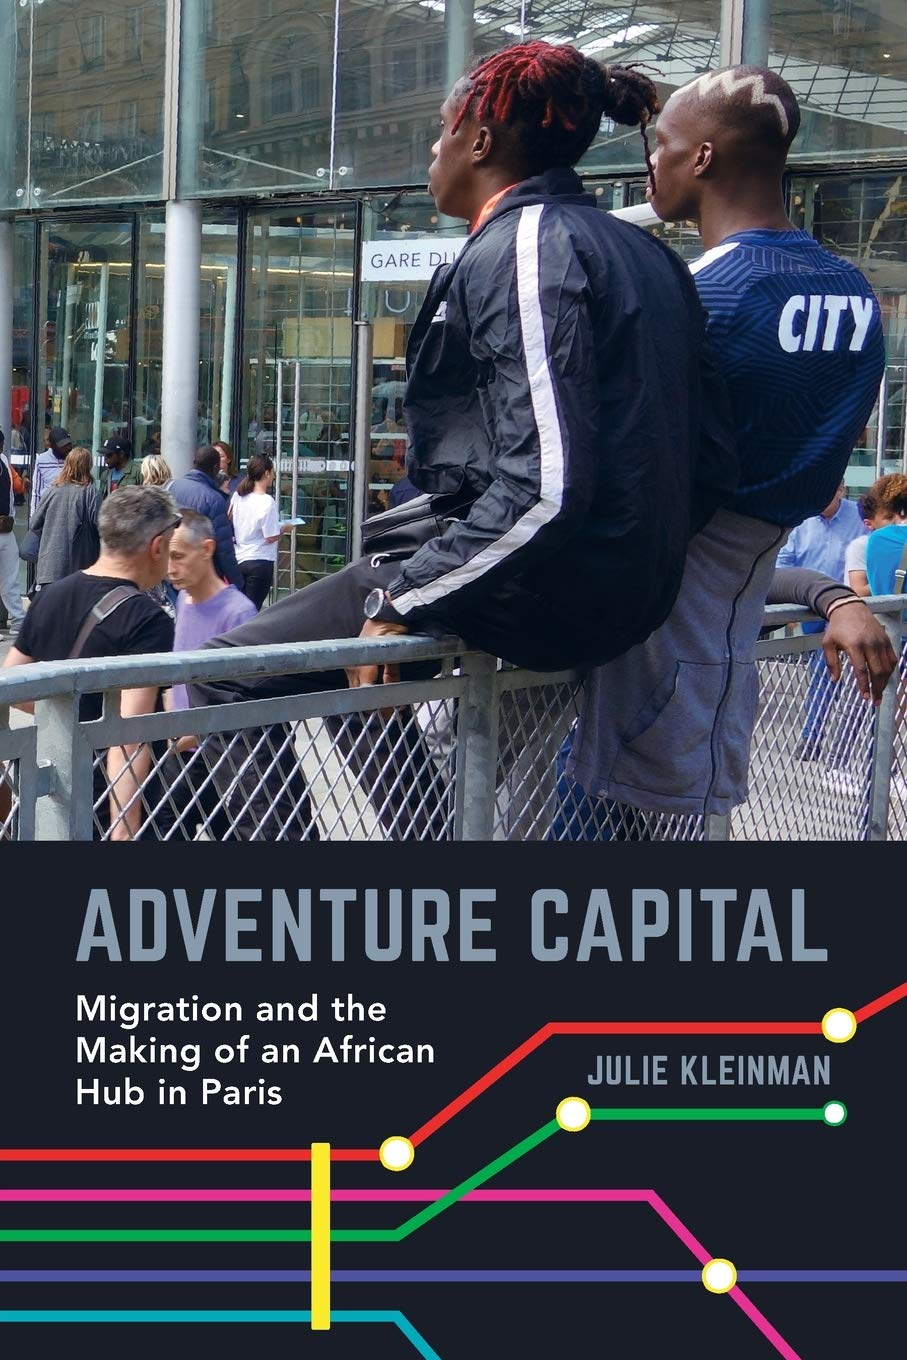 Kleinman, J: Adventure Capital: Migration and the Making of an African Hub in Paris: Amazon.es: Kleinman, Julie: Libros en idiomas extranjeros